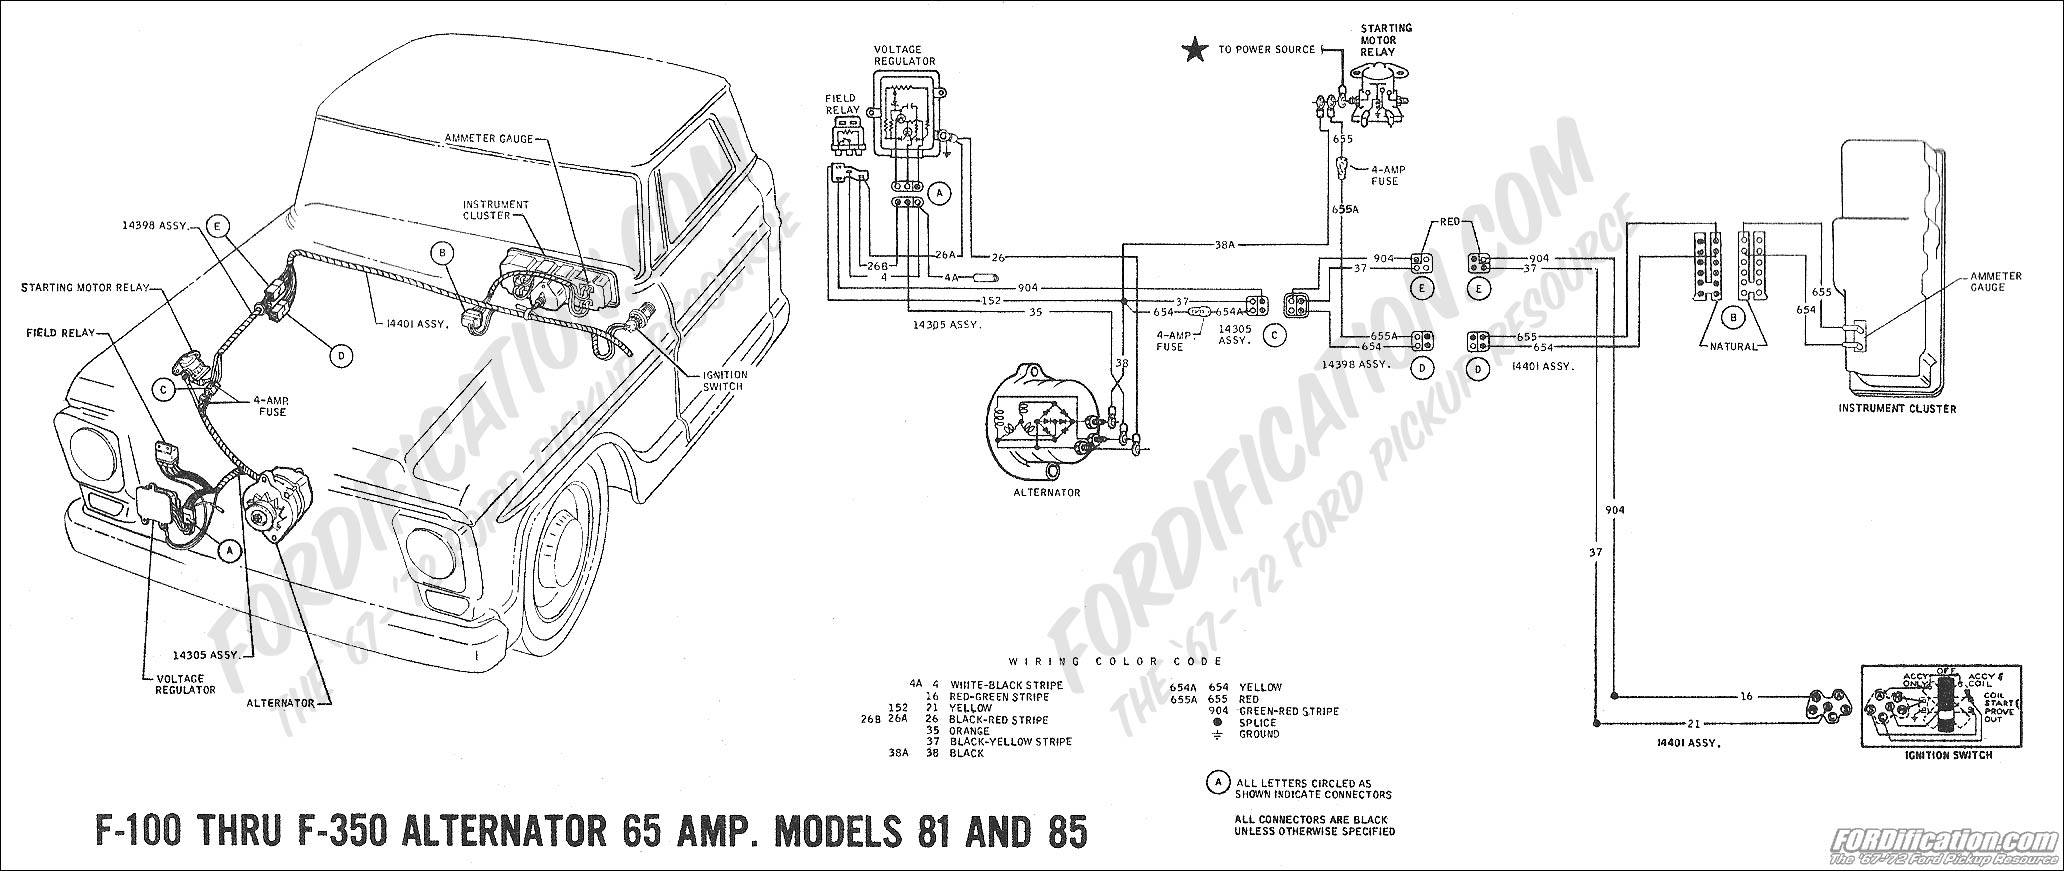 wiring_69charging03 ford truck technical drawings and schematics section h wiring 1975 chevy alternator wiring diagram at honlapkeszites.co